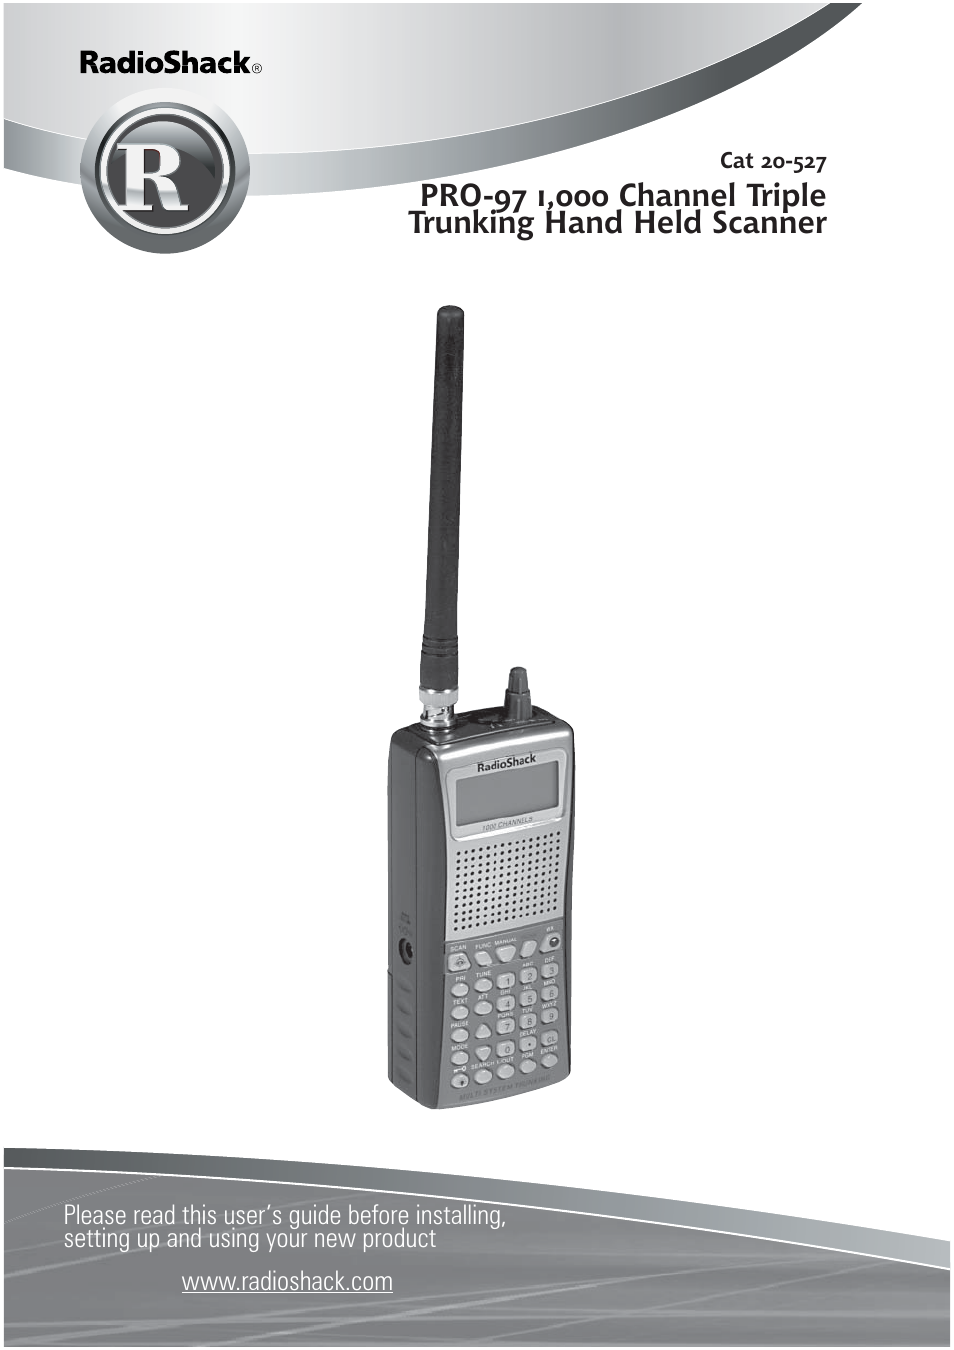 radio shack pro 97 1 000 user manual 88 pages rh manualsdir com Radio Shack Race Scanner Radio Shack Race Scanner